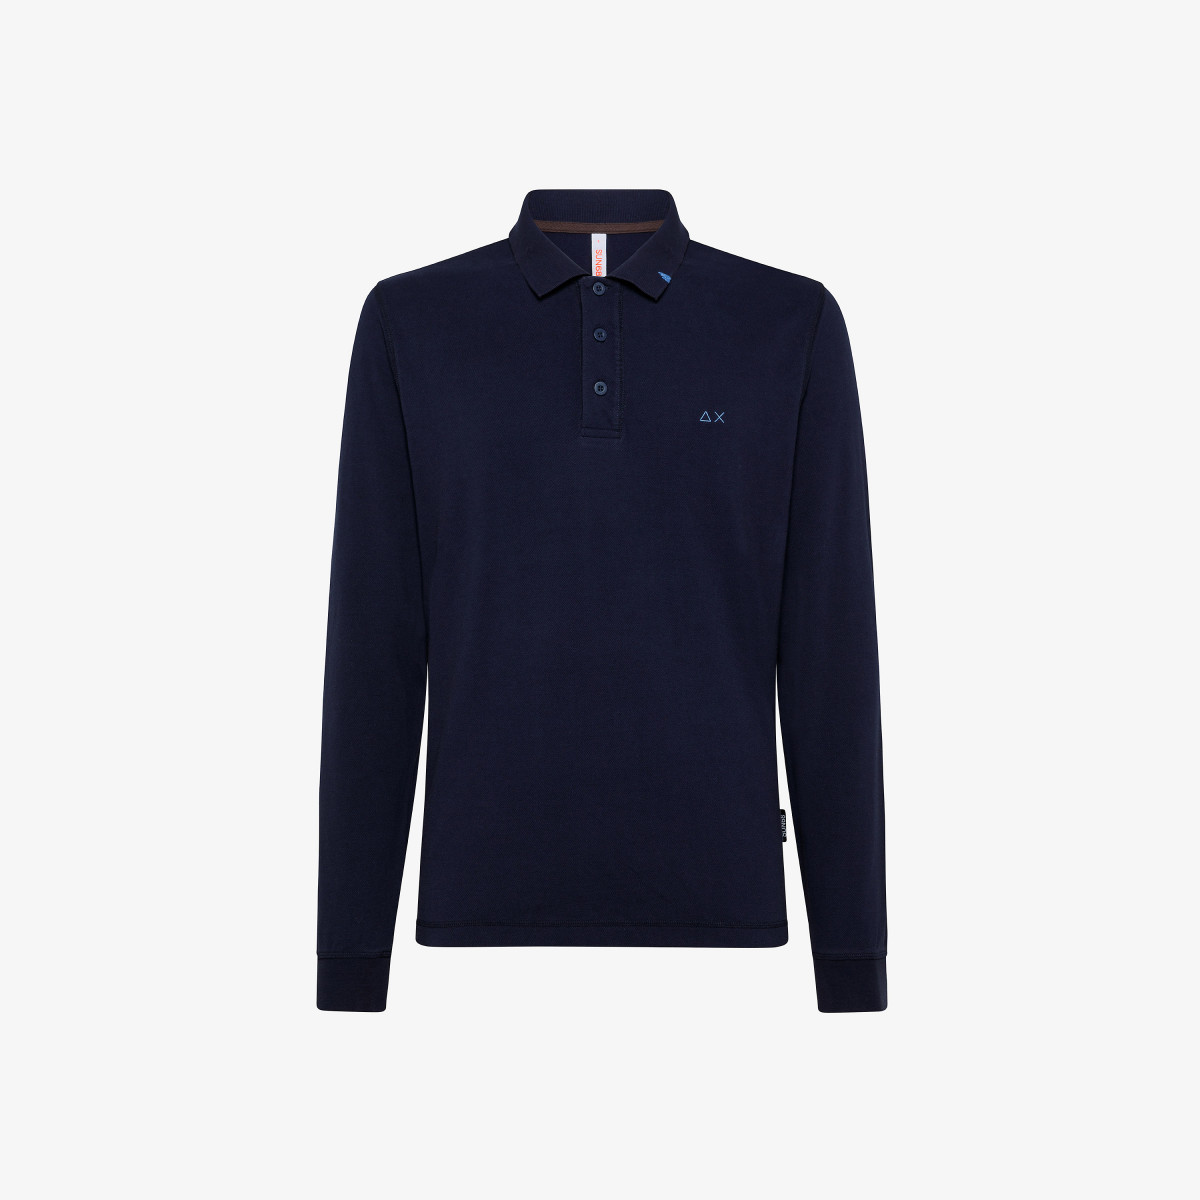 POLO VINTAGE CONTRAST STICHING L/S NAVY BLUE